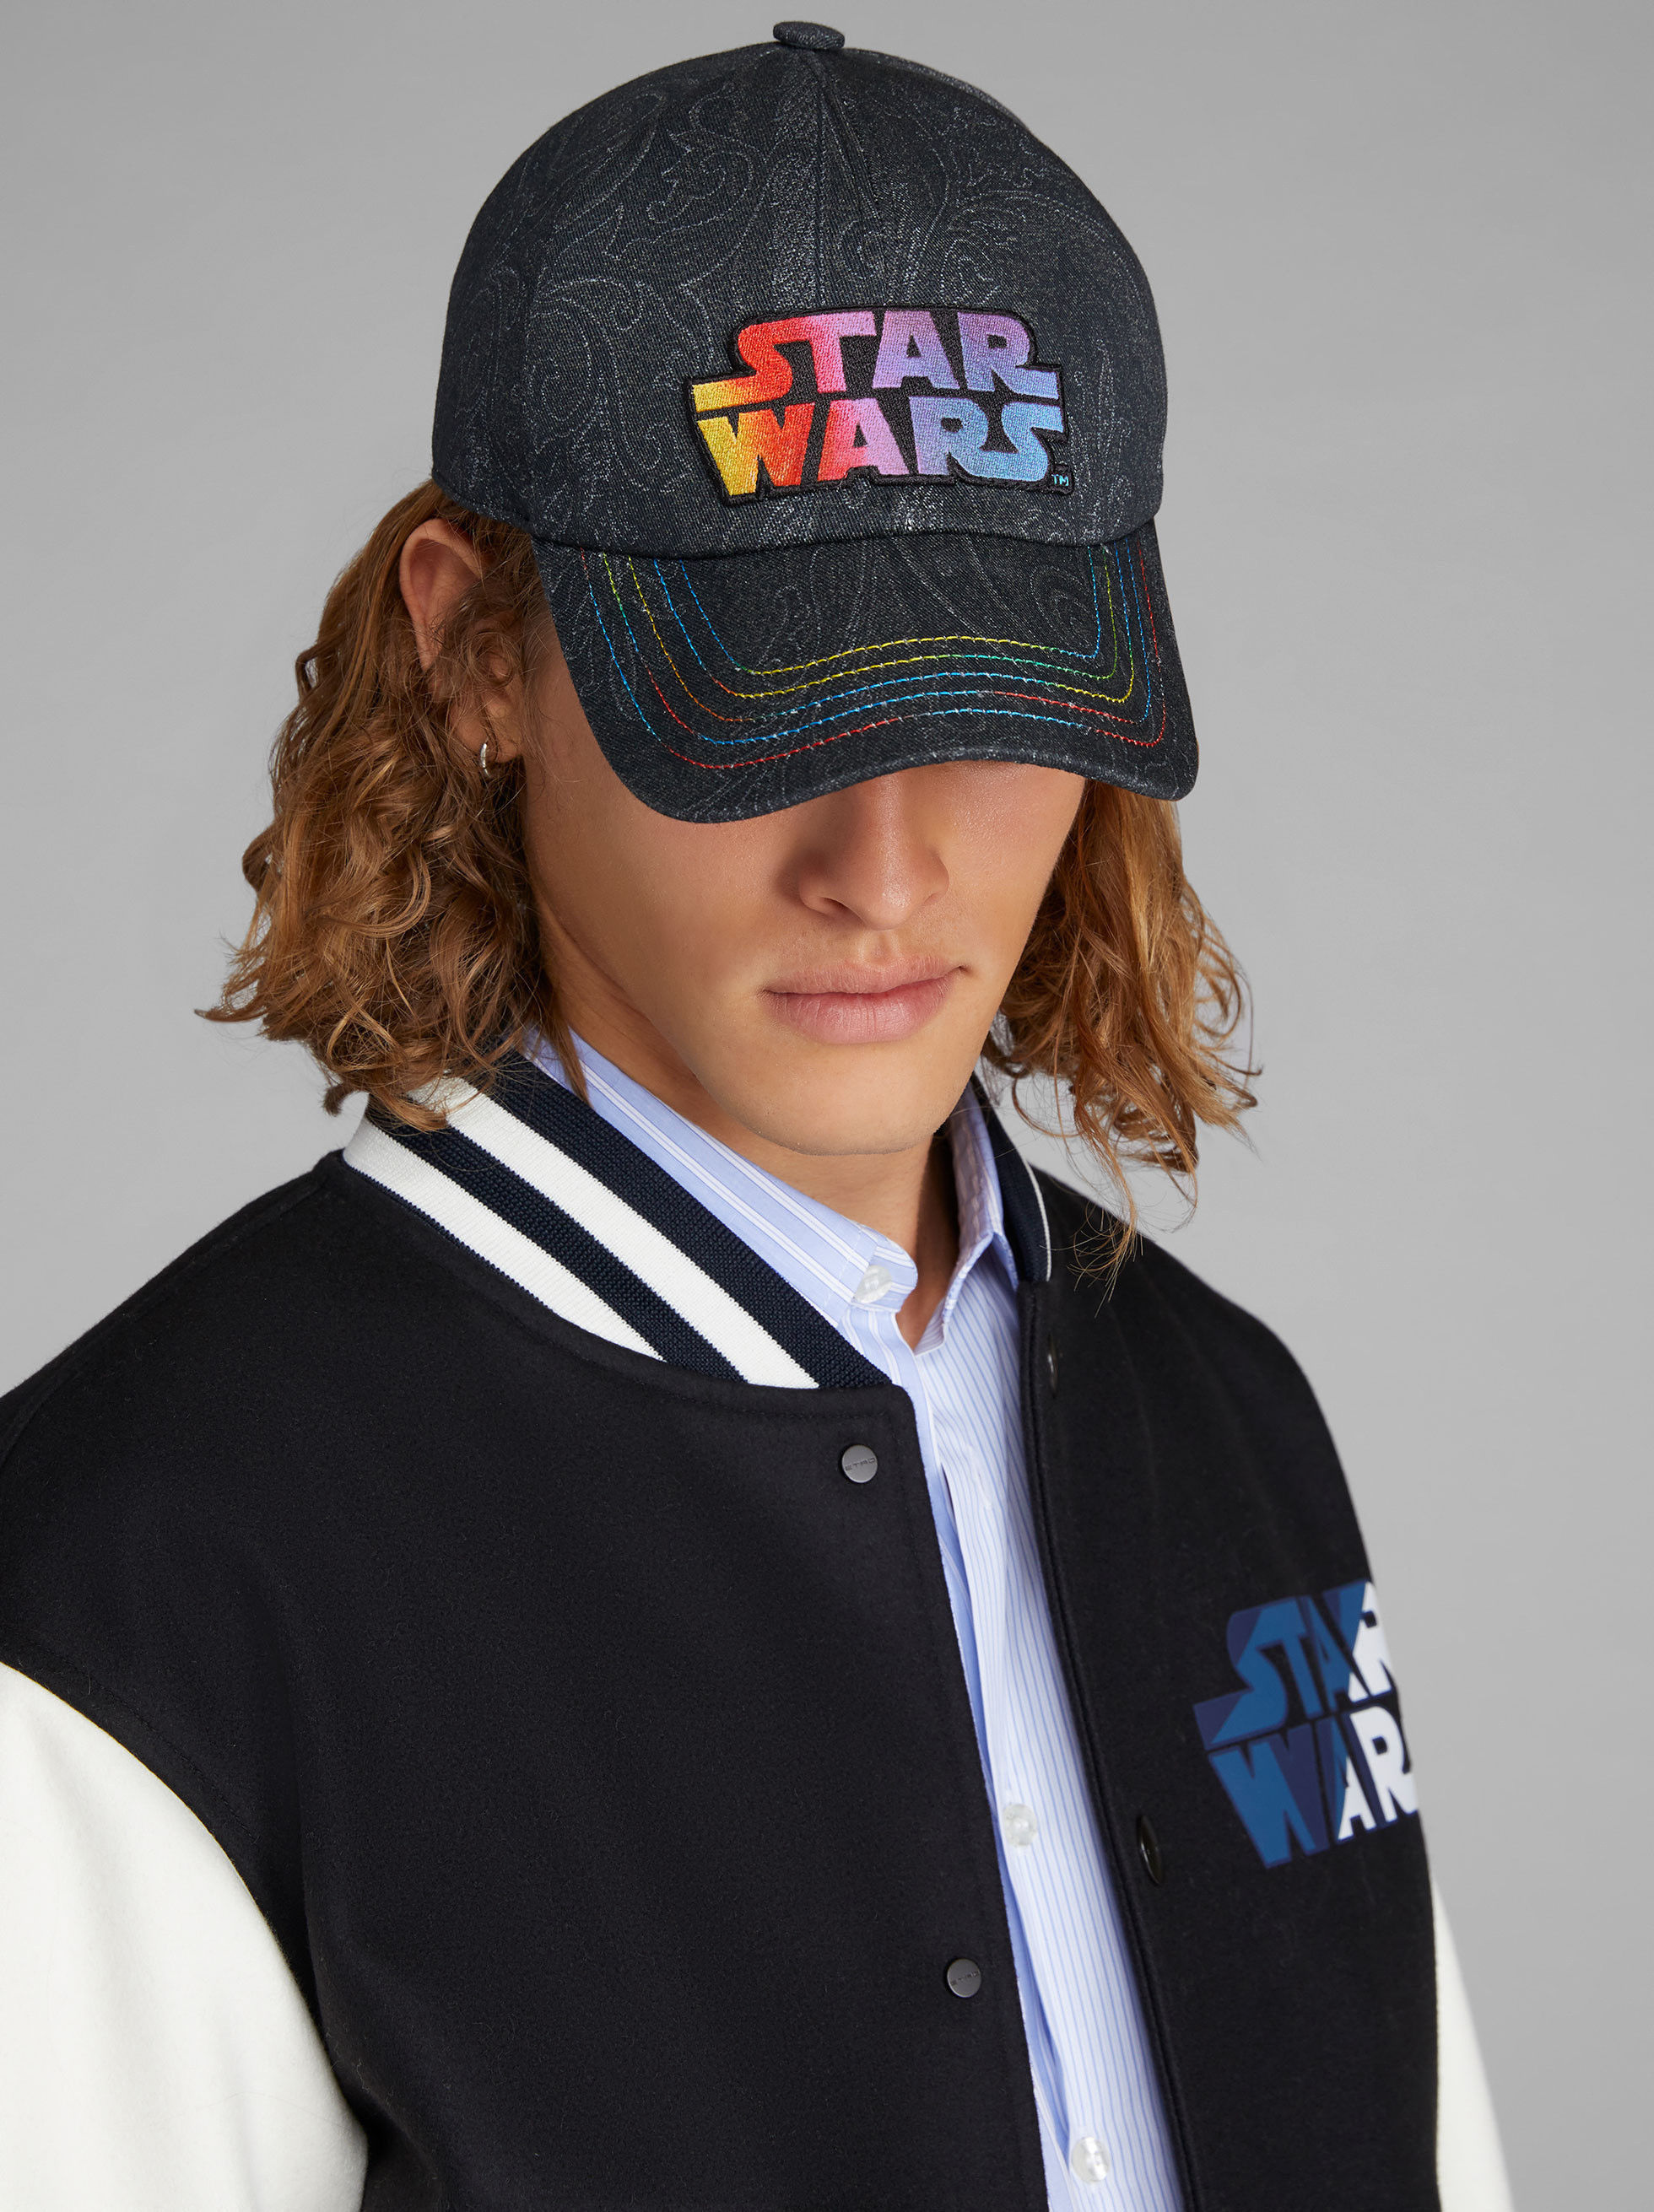 ETRO X STAR WARS BASEBALL CAP